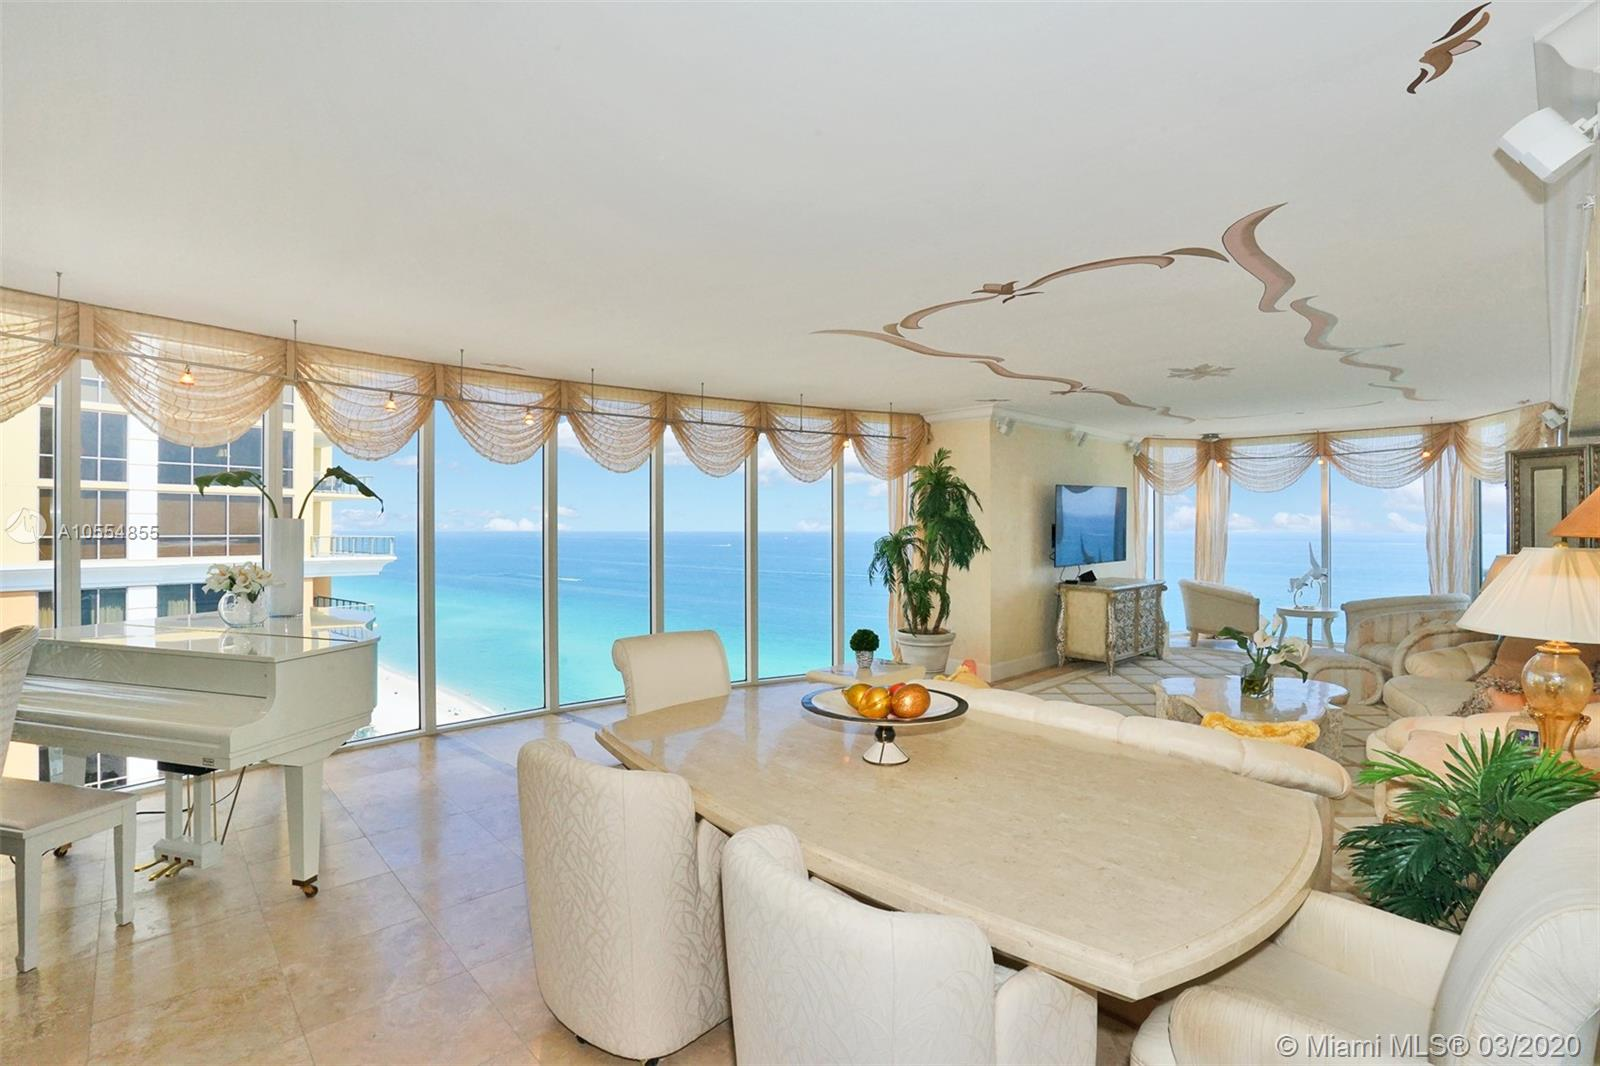 One of Sunny Isles Beach 6 Bedroom Homes for Sale at 17555 Collins Ave